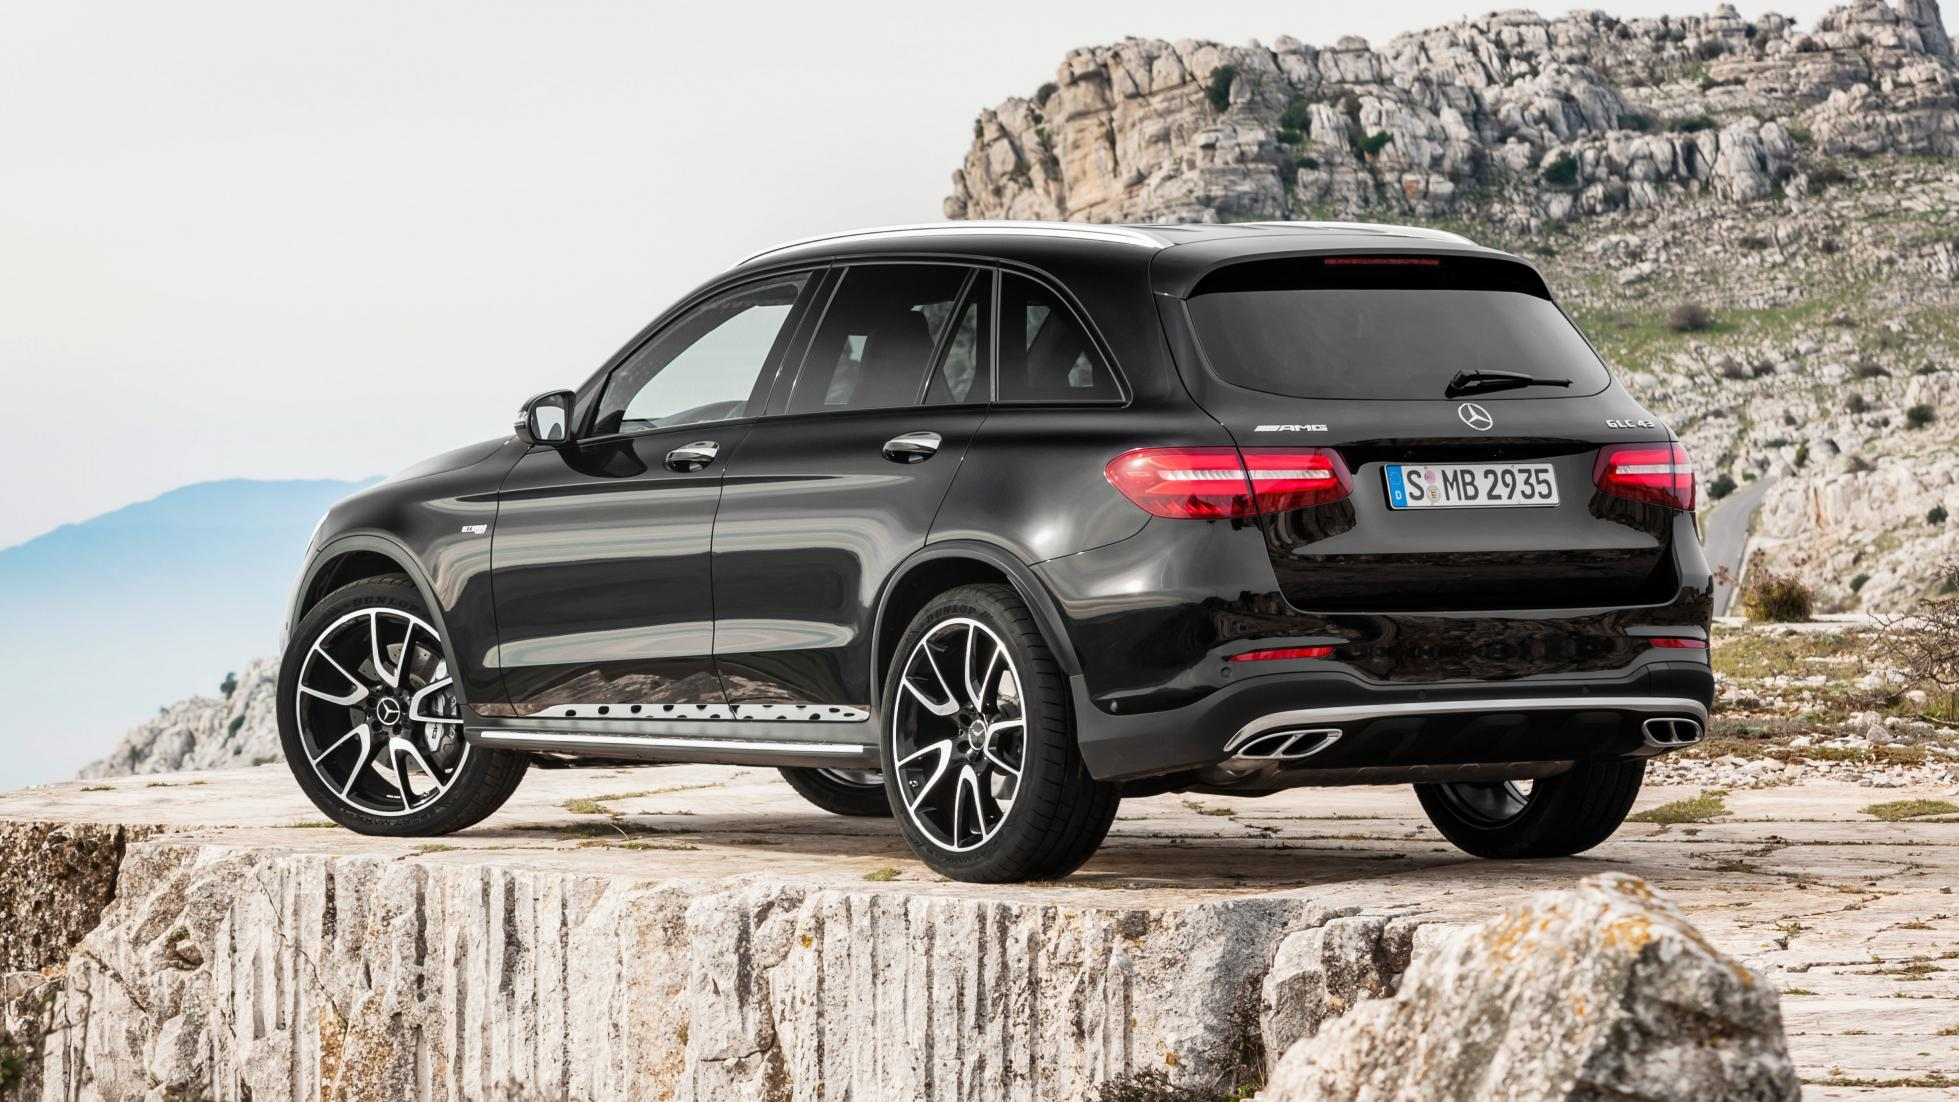 Glc 43 Amg >> Mercedes Benz Glc 43 Amg Laptimes Specs Performance Data